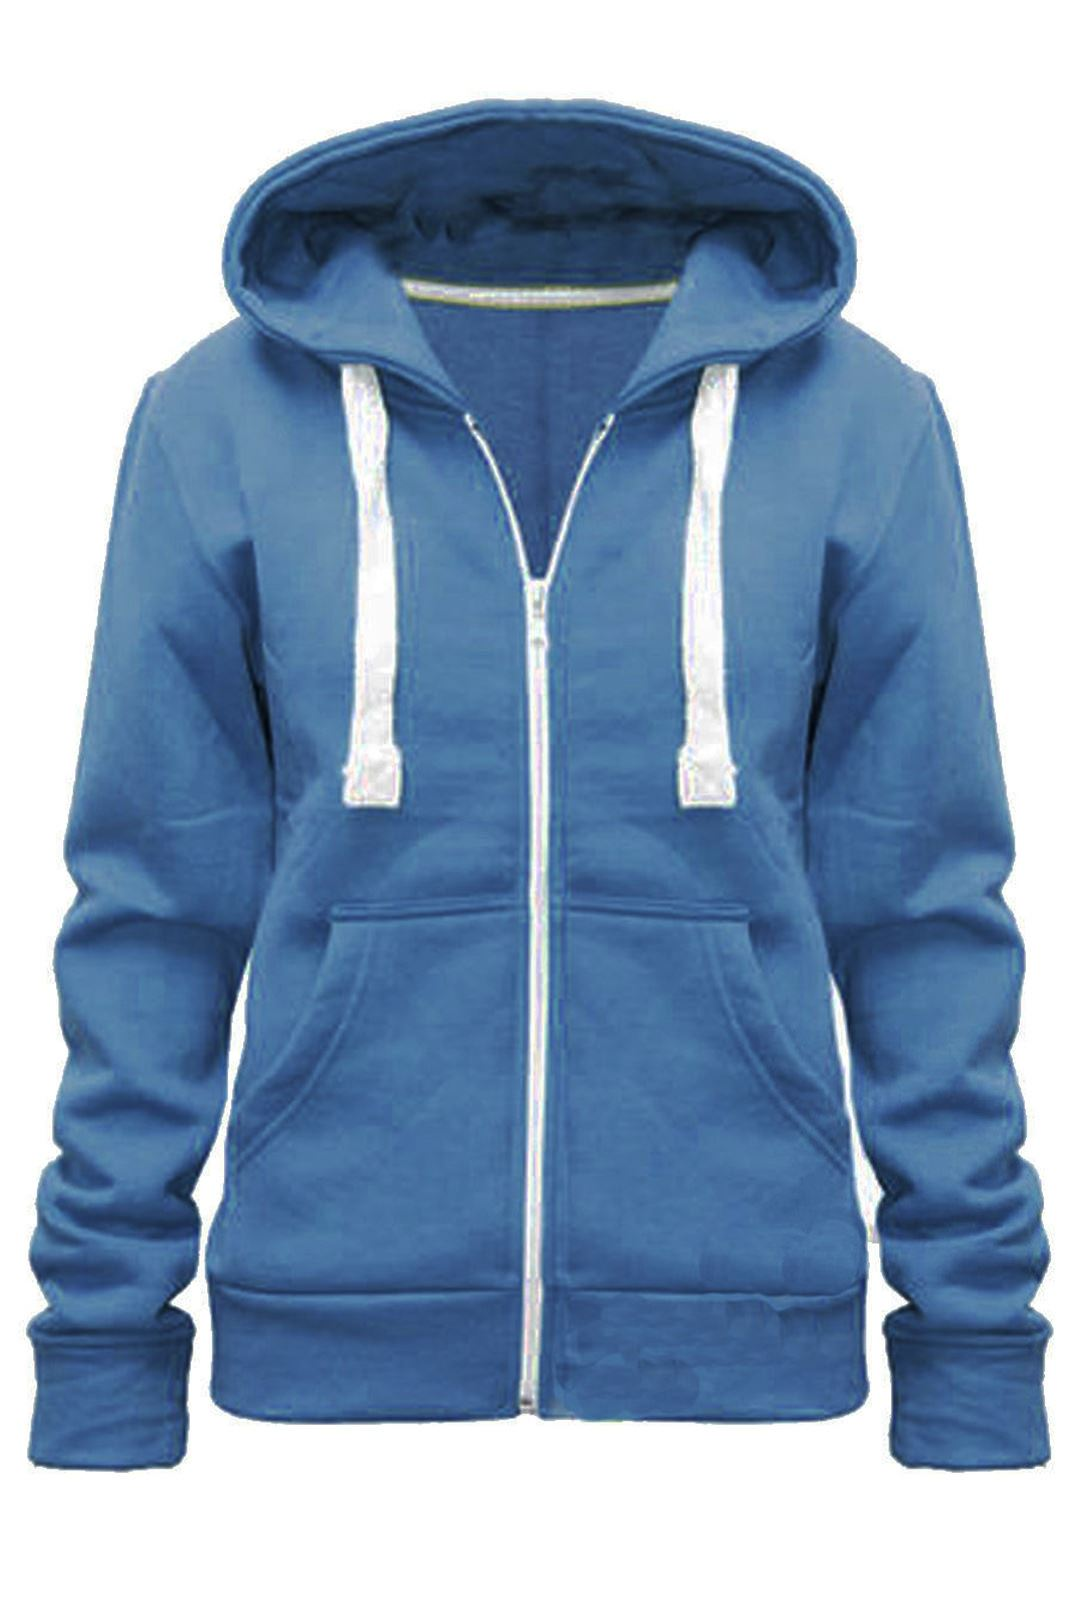 Shop for Women's Sweaters and Hoodies at REI - FREE SHIPPING With $50 minimum purchase. Top quality, great selection and expert advice you can trust. % Satisfaction Guarantee.